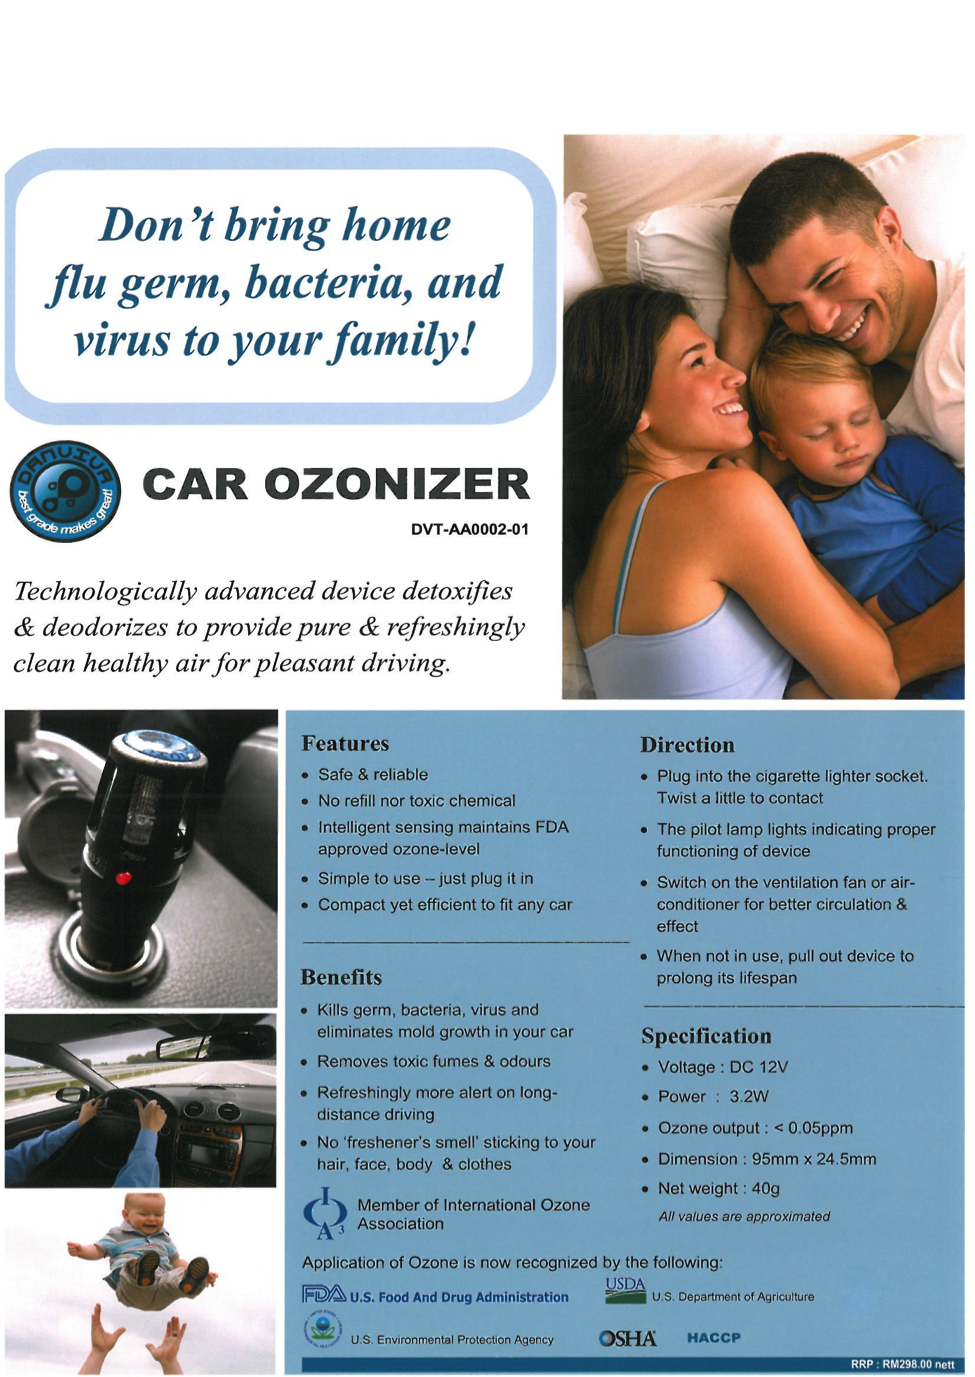 Car Ozonizer - Air Purifier for the Car